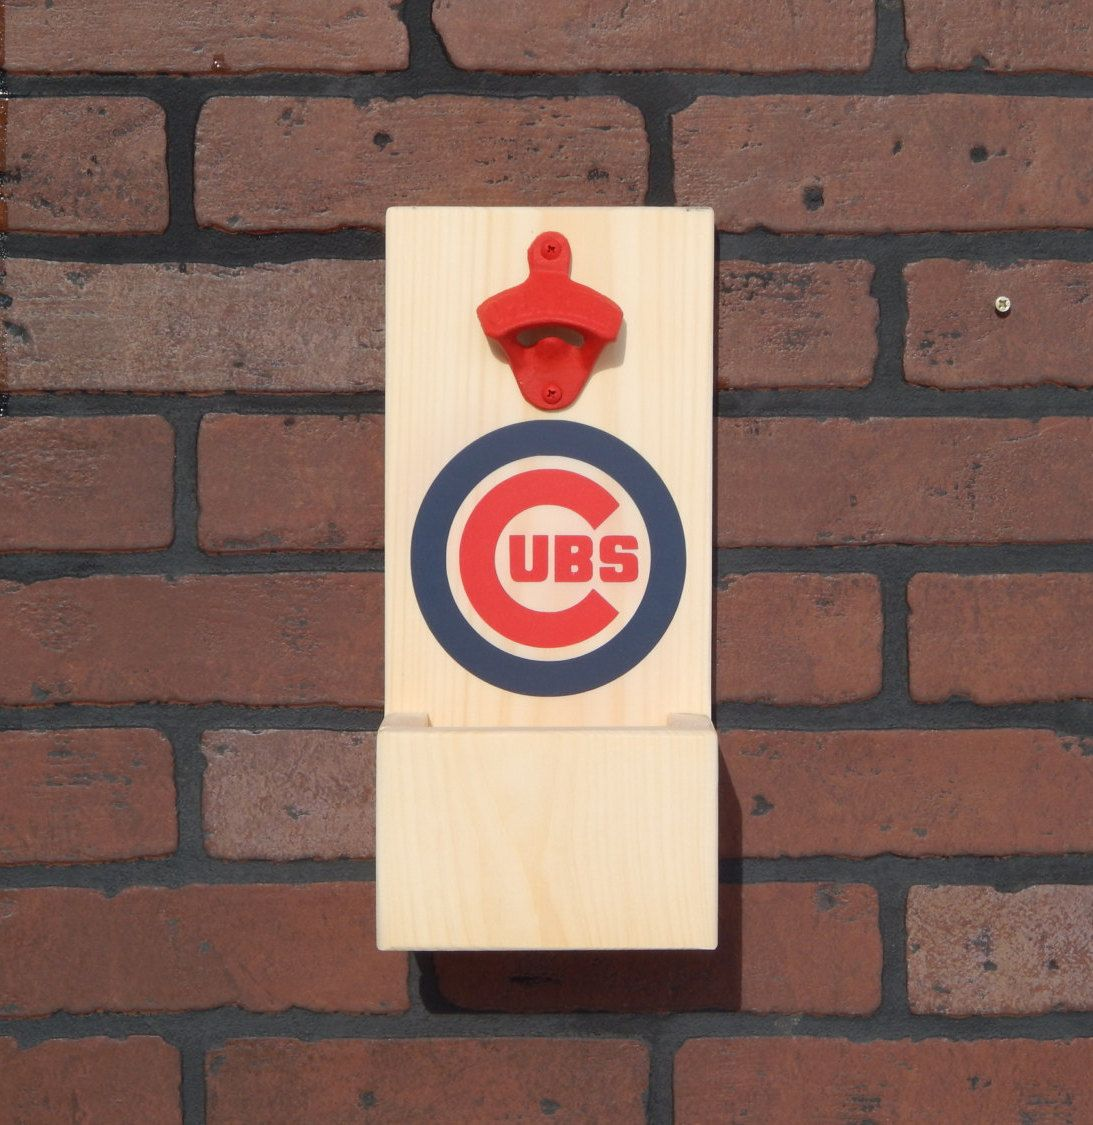 Chicago Cubs Mlb Baseball Style Wall Mounted Bottle Opener With Cap Catcher And Easy Removal System A Wall Mounted Bottle Opener Mlb Chicago Cubs Cap Catcher